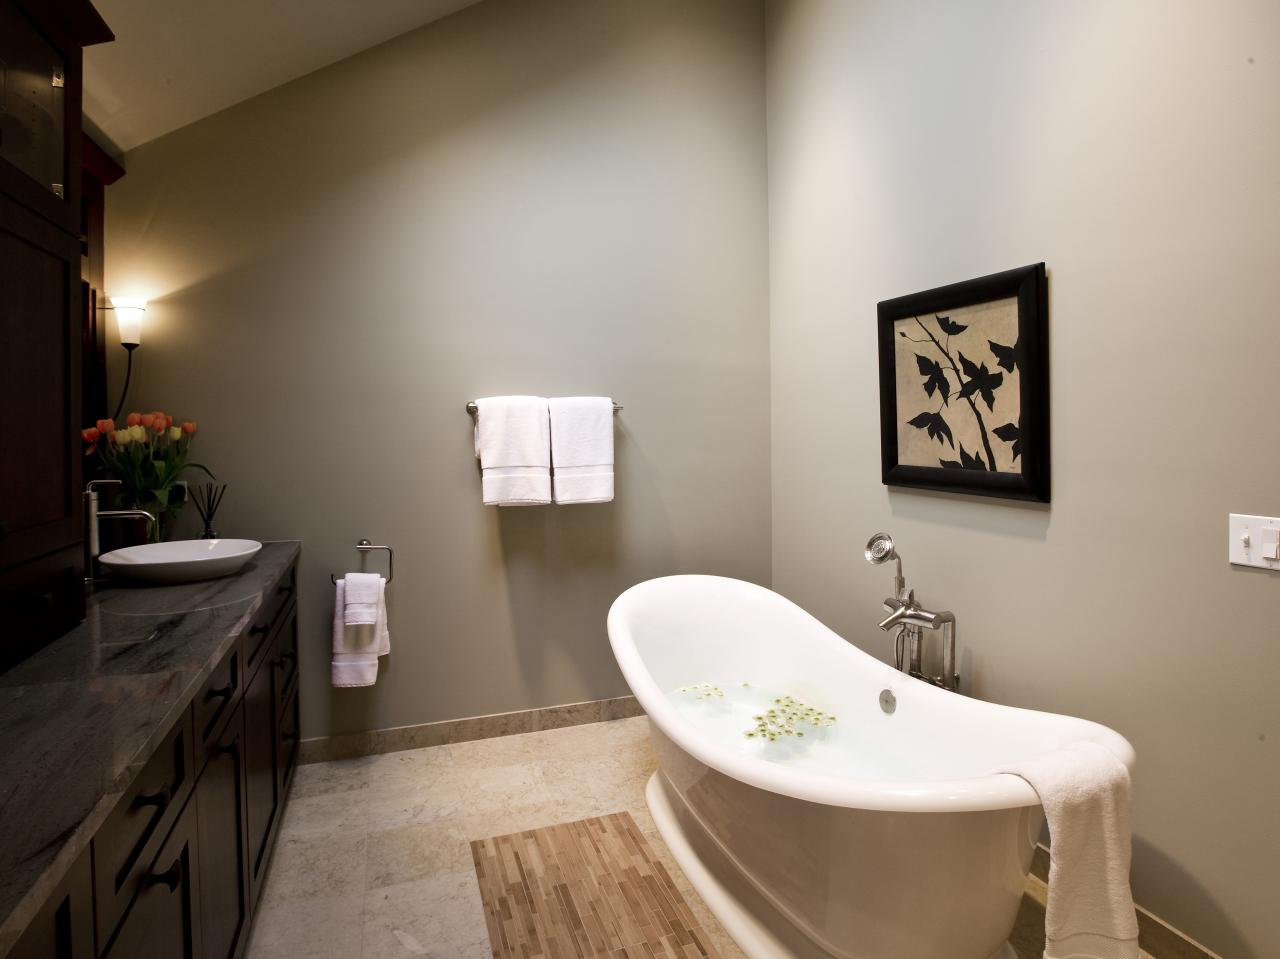 Deep Tubs for Small Bathrooms That Provide You Functional ... on Simple:zvjxpw8Nmfo= Small Bathroom Ideas  id=98403